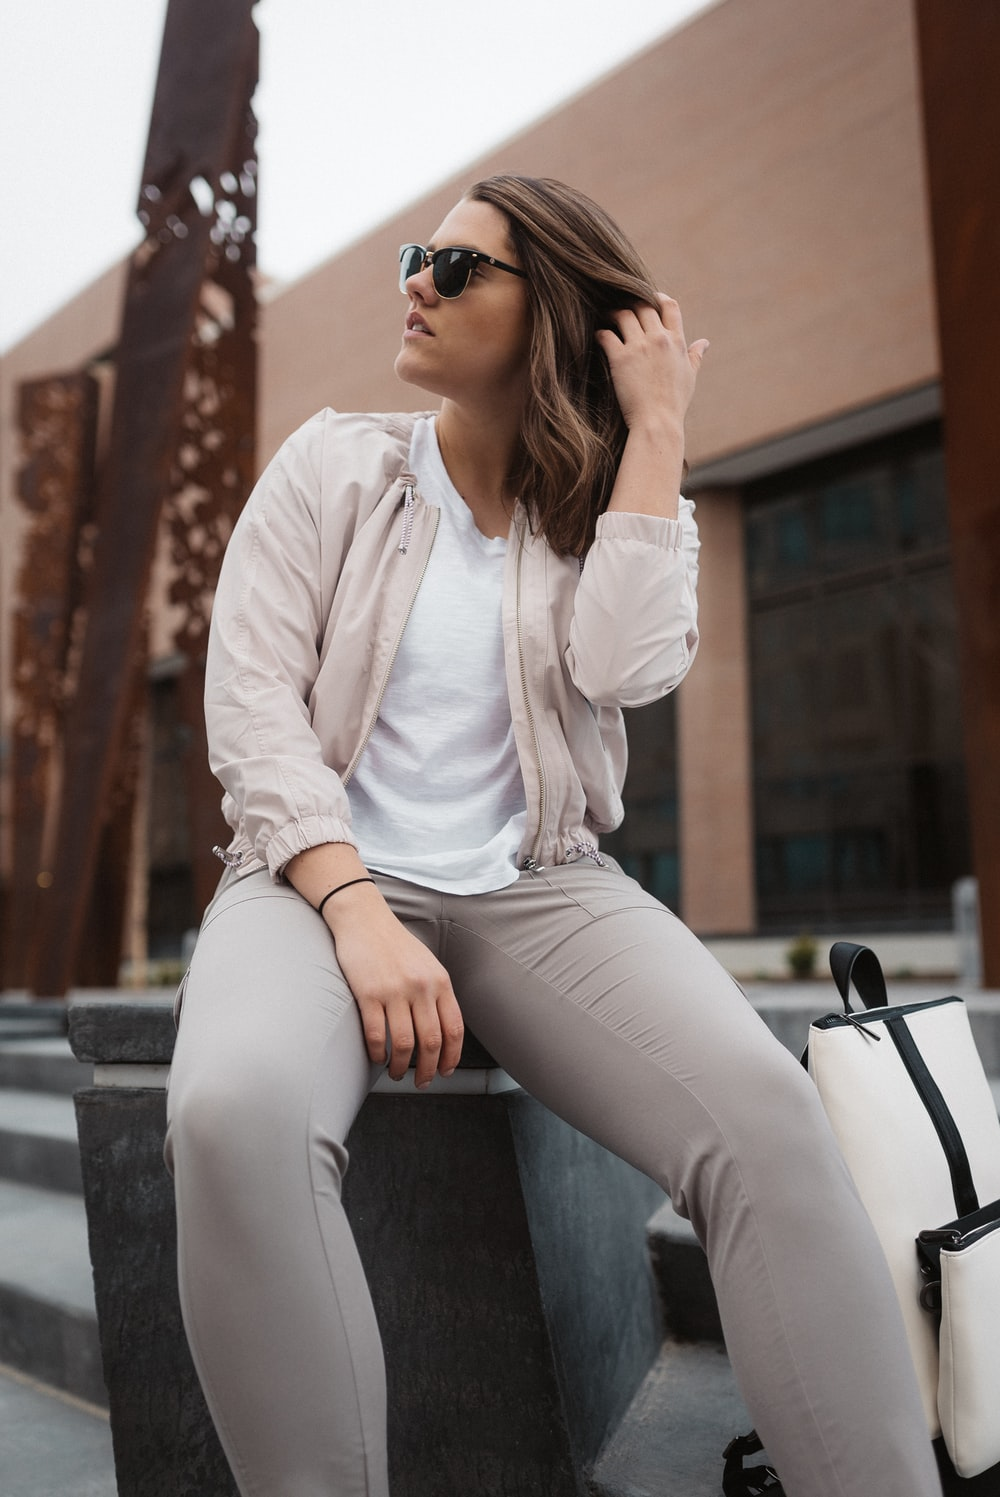 woman in white long sleeve shirt and gray pants sitting on gray concrete bench during daytime